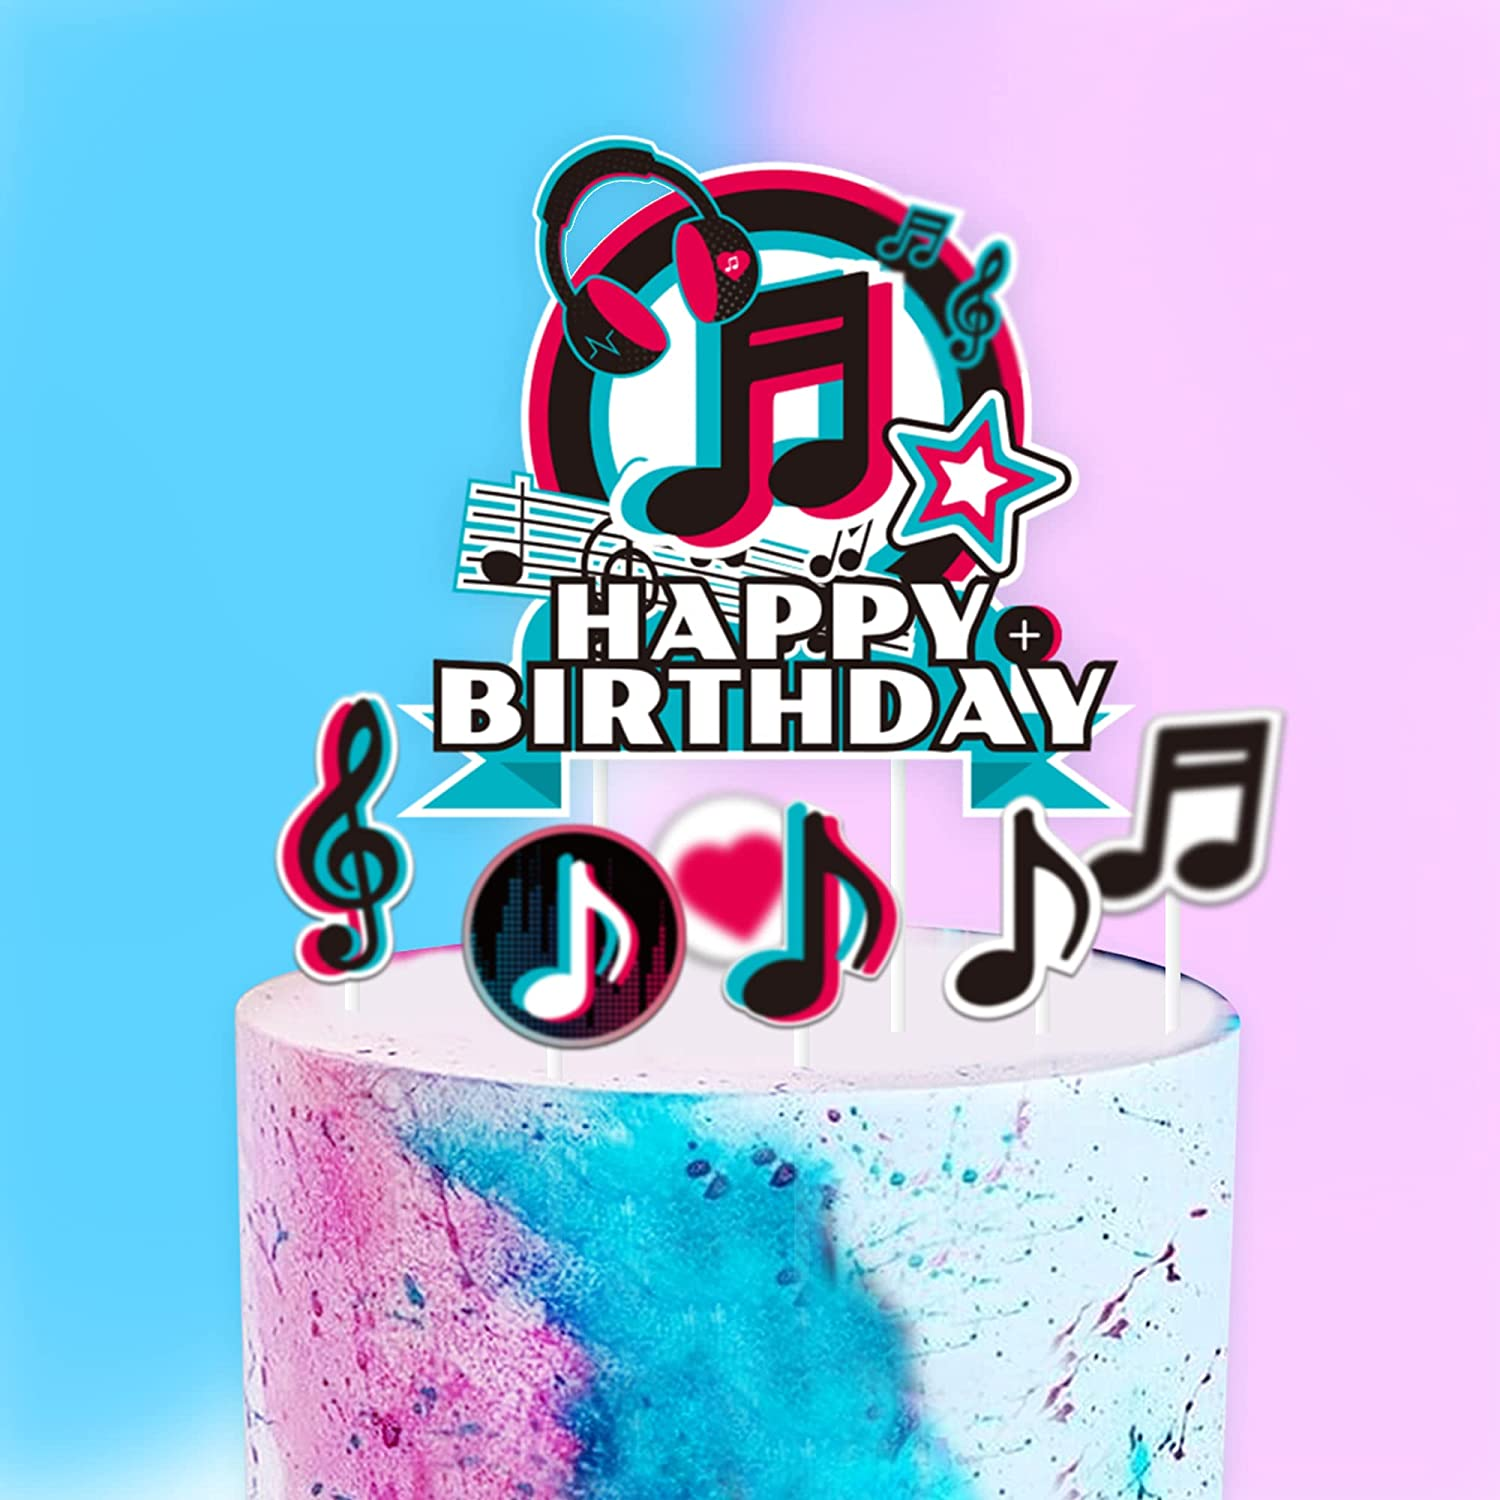 Music Birthday Cake Toppers, Musical Party Supplies for Celebrate Birthday Cupcake Toppers, Girl's Music Karaoke Themed Party Supplies Decorations, Set of 7